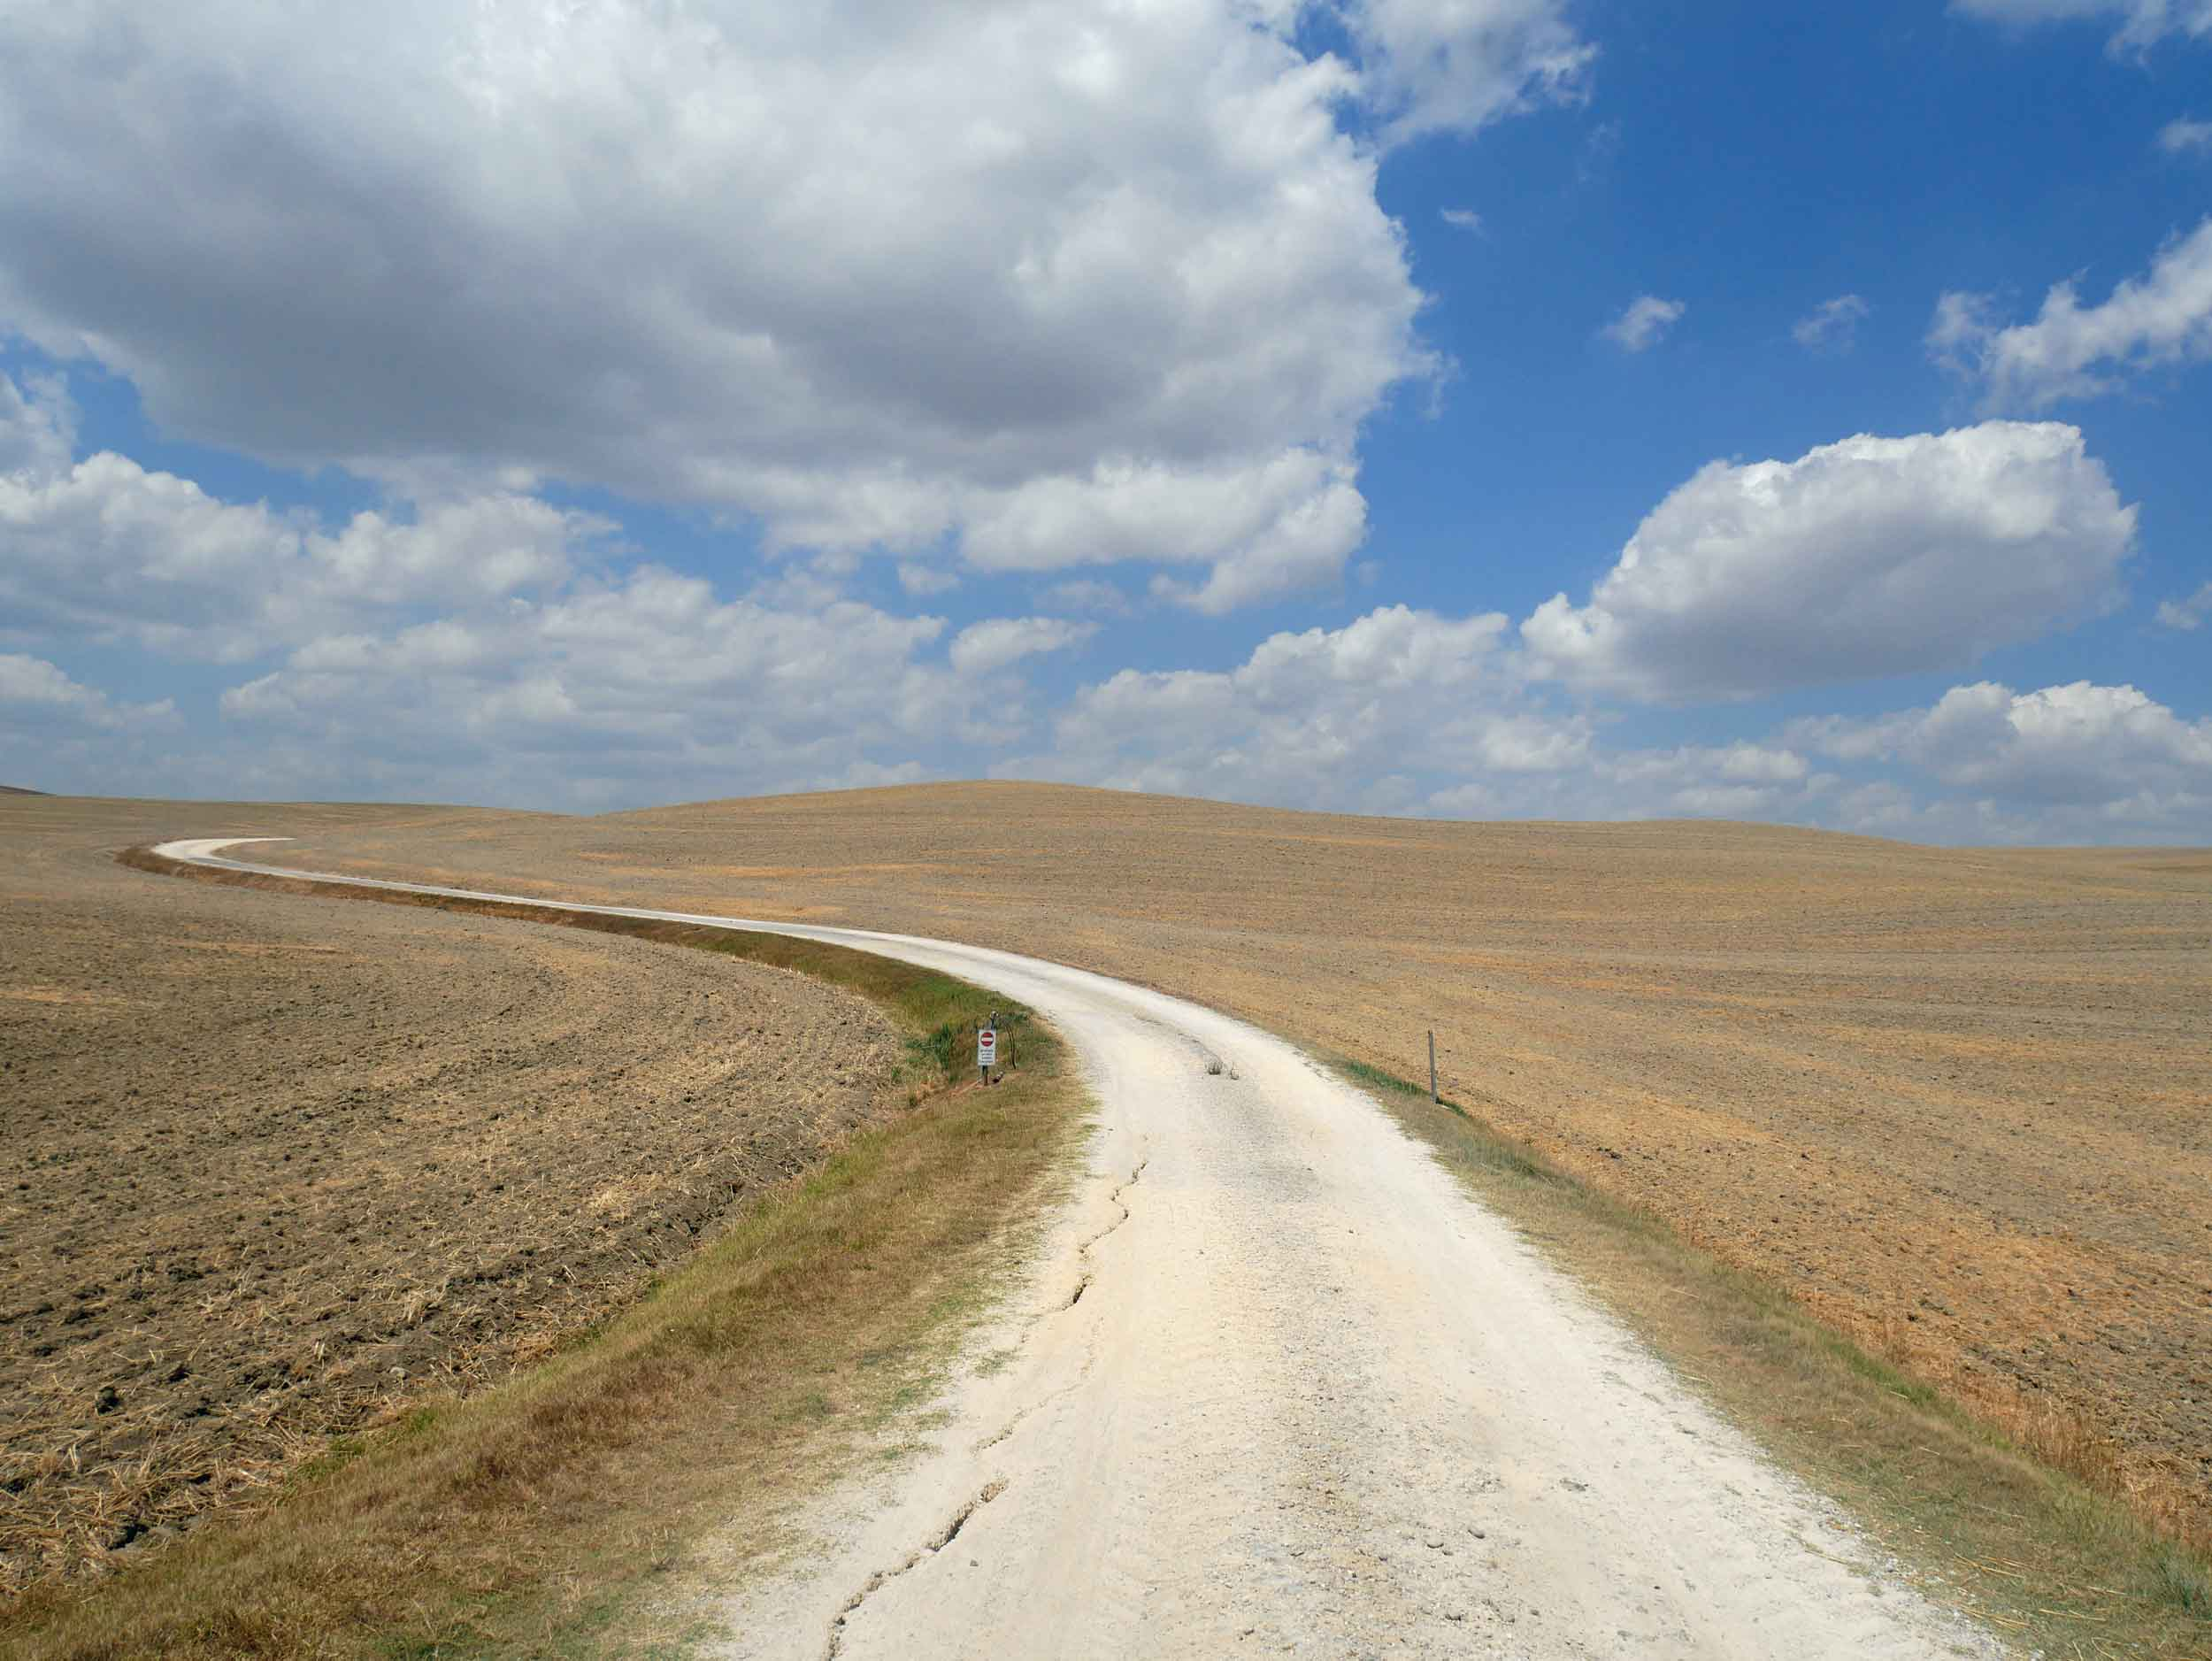 Dusty roads cut through dried-up fields along our route through Val d'Orcia.